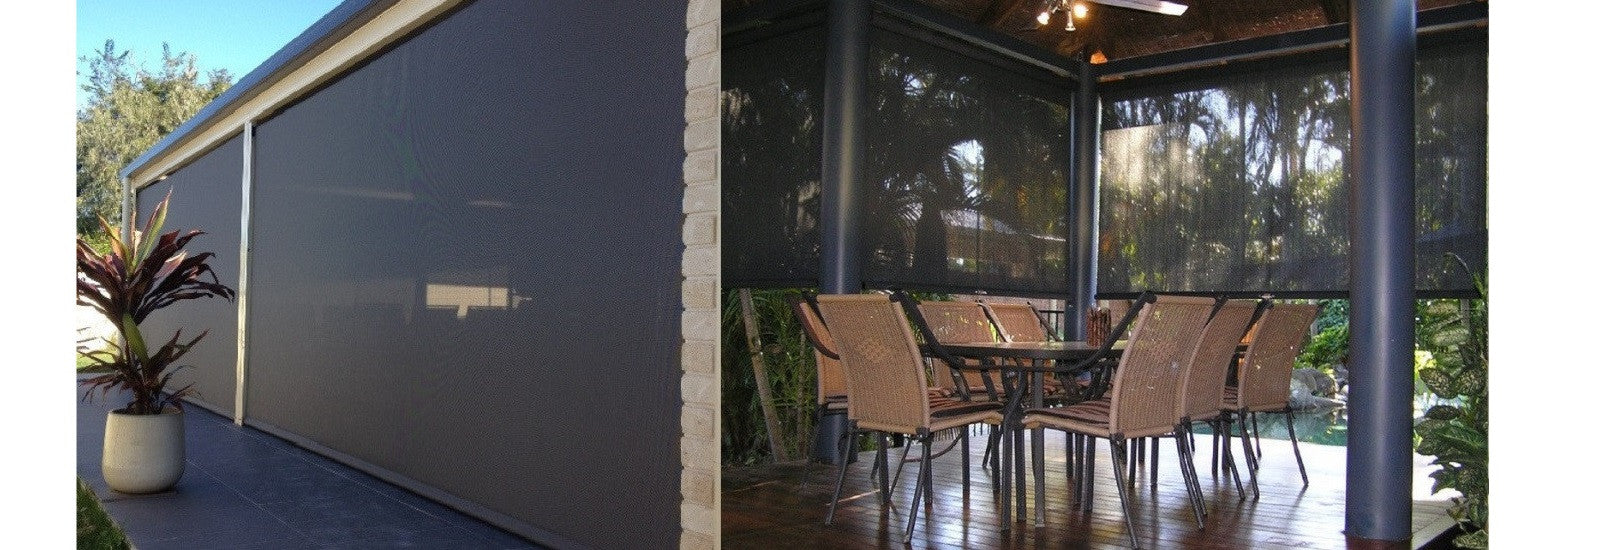 Ozrite awnings outdoor blinds brisbane outdoor shades patio save on custom made outdoor blinds solutioingenieria Gallery